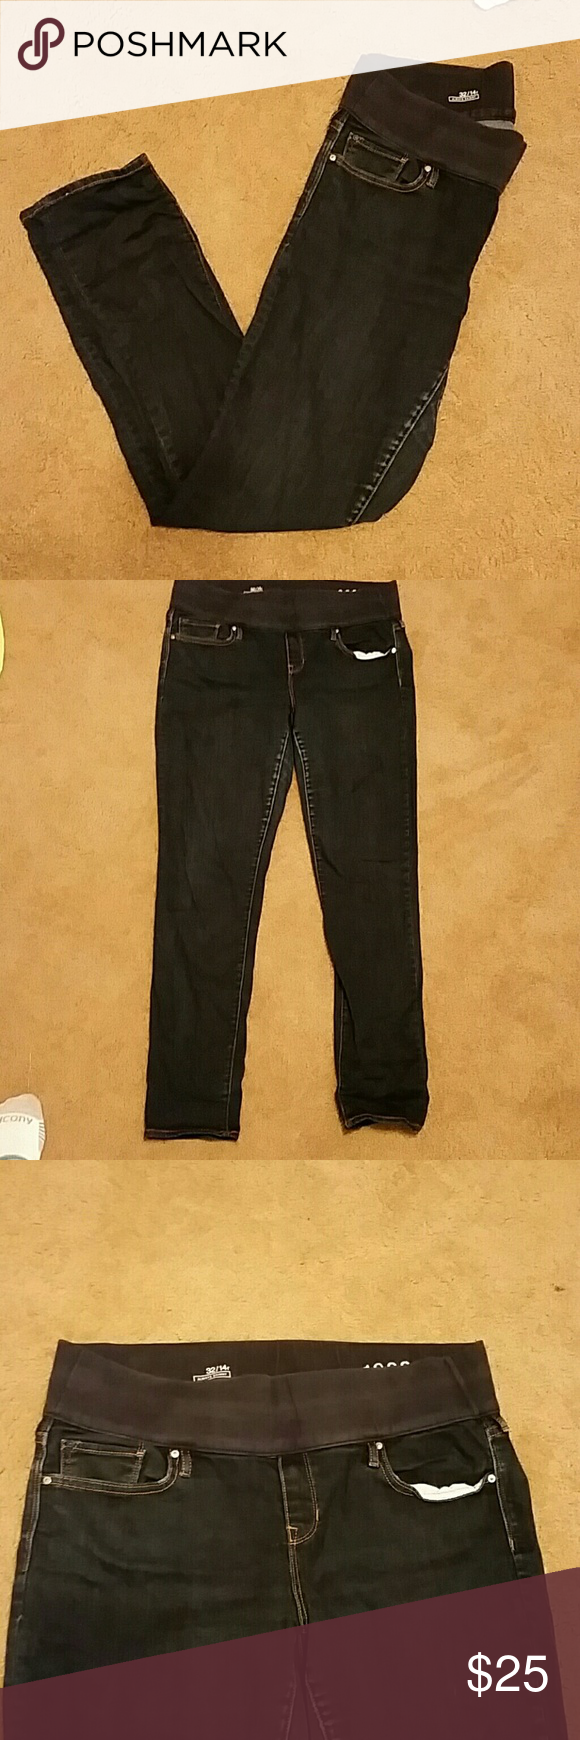 """Gap Maternity jeans Gap Maternity jeans size 32/14R.  Dark blue denim, always skinny fit and under belly waist. 30"""" inseam.  Take a look at my many other tall, maternity, nursing, boys and baby girl clothes listed! I'm always open to bundled offers! Gap Maternity Jeans Skinny"""